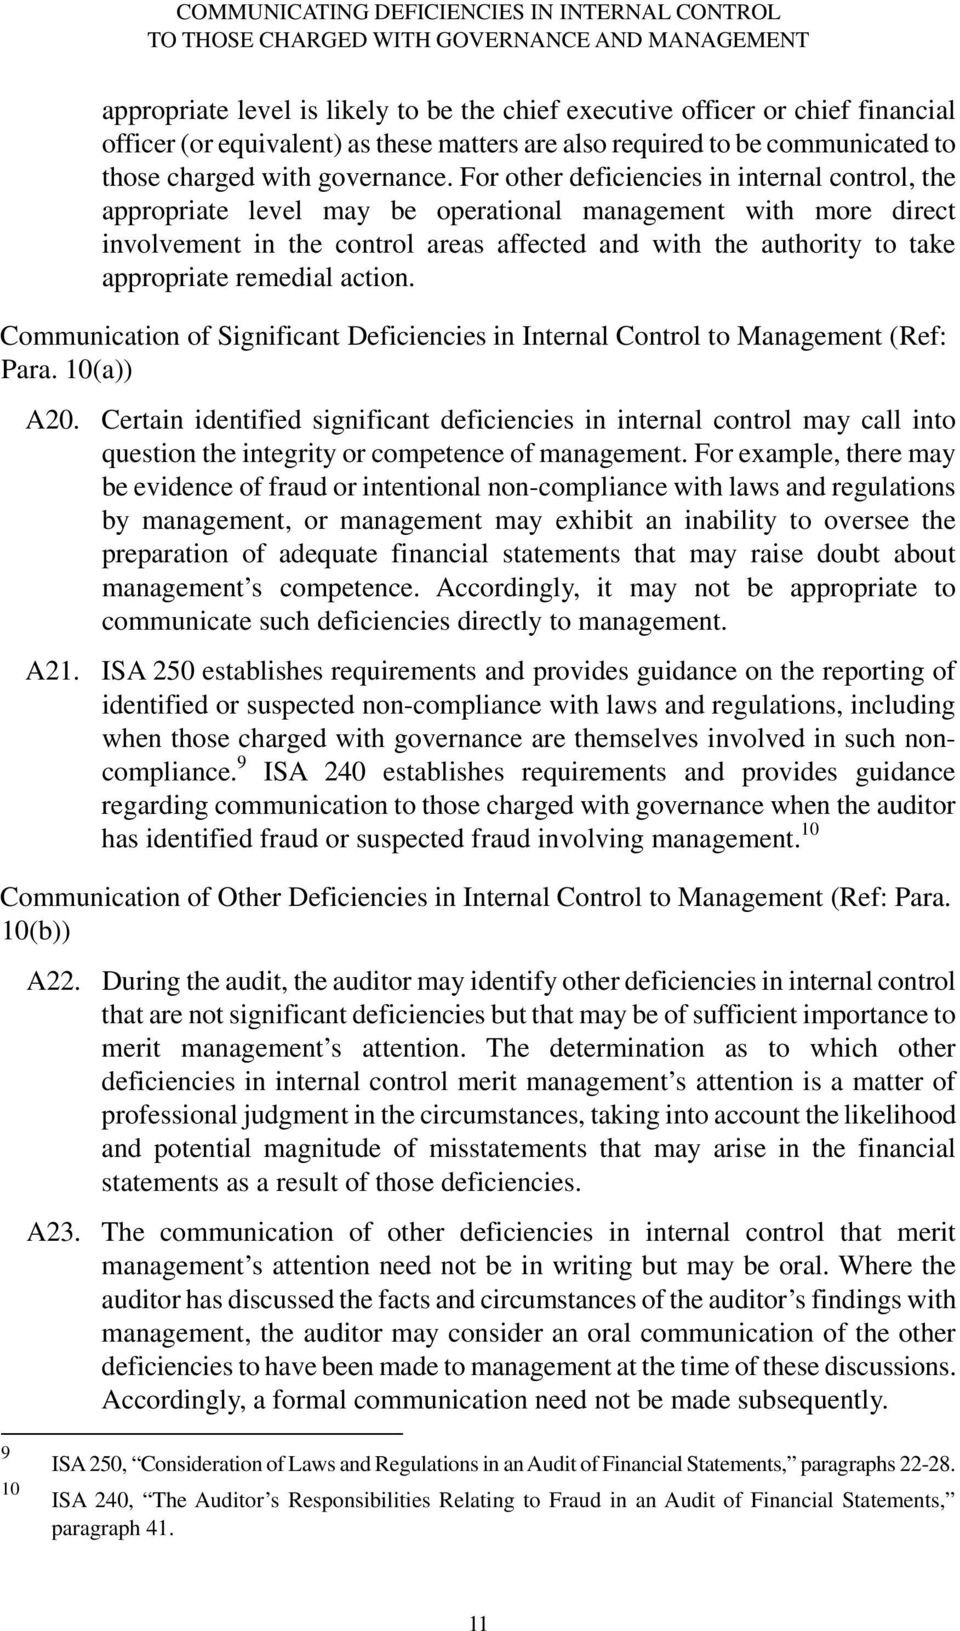 Cmmunicatin f Significant Deficiencies in Internal Cntrl t Management (Ref: Para. 10(a)) A20.